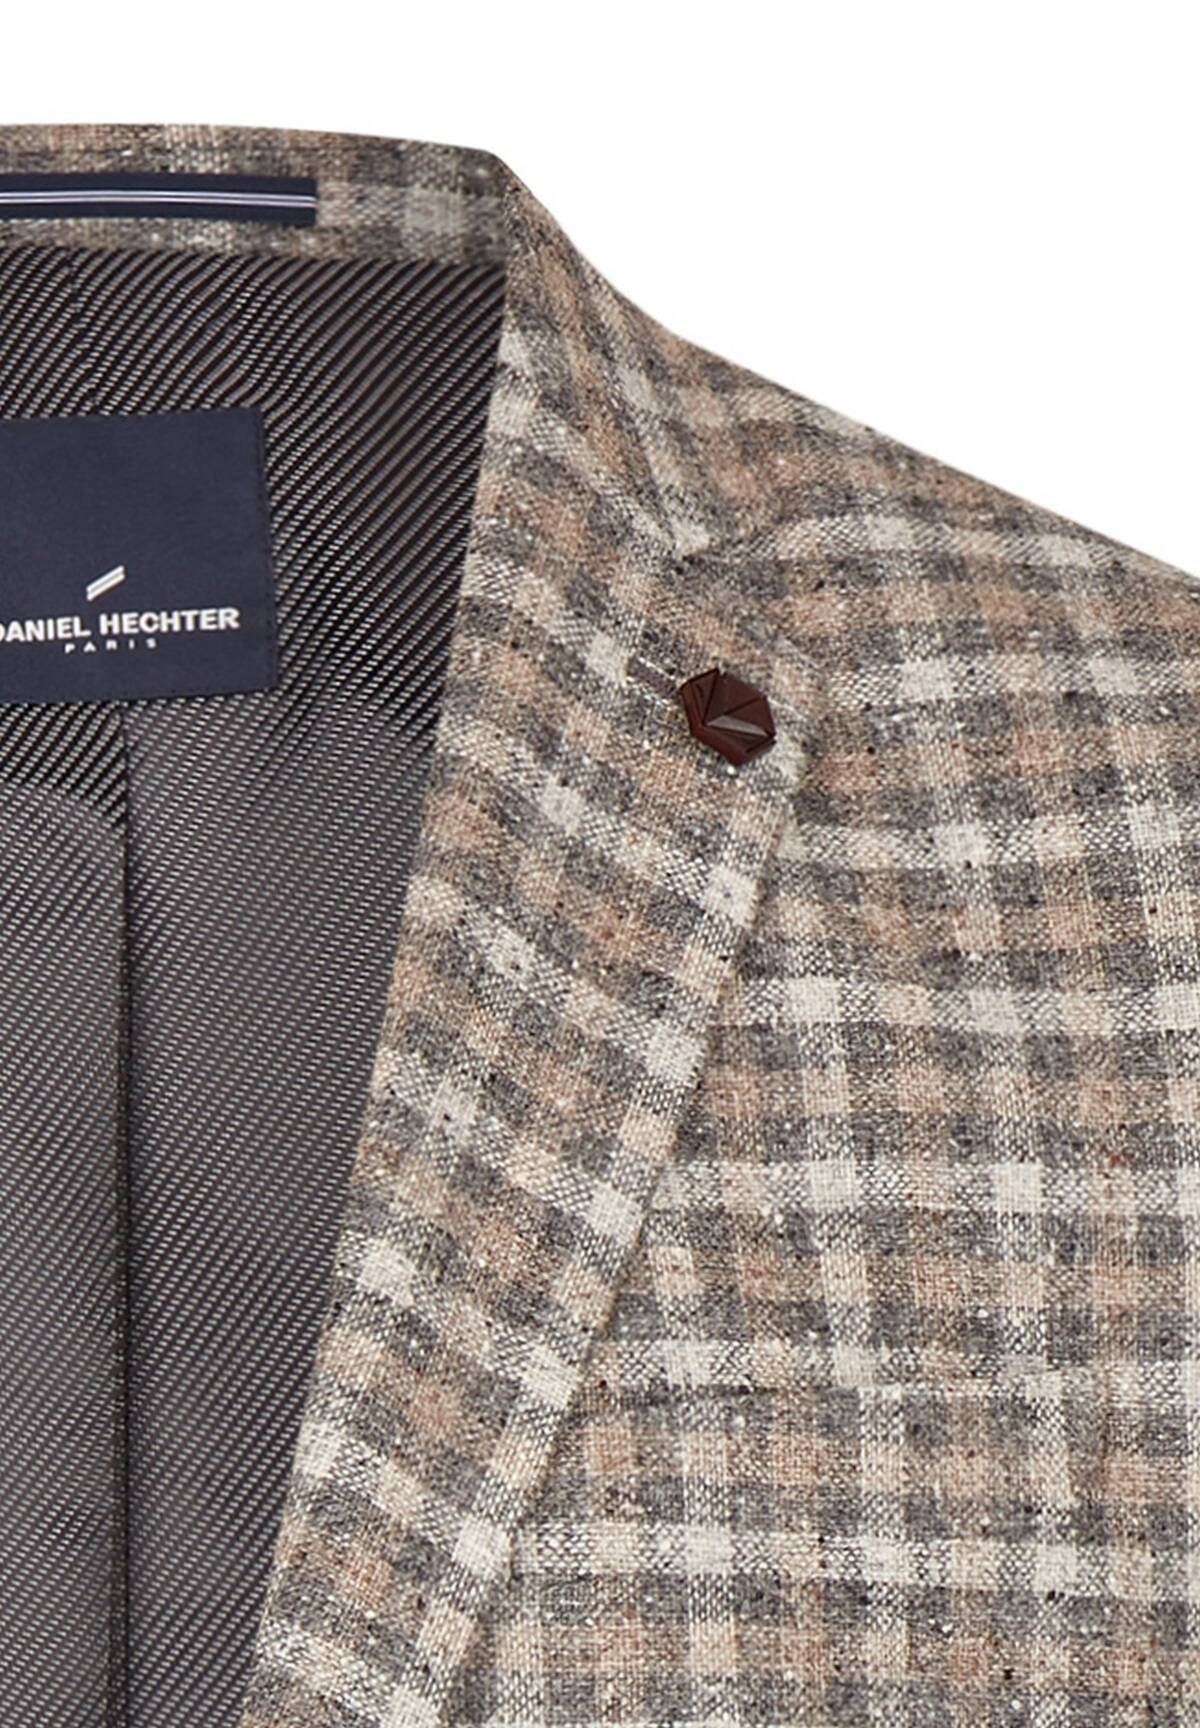 Veste à carreaux en tweed /